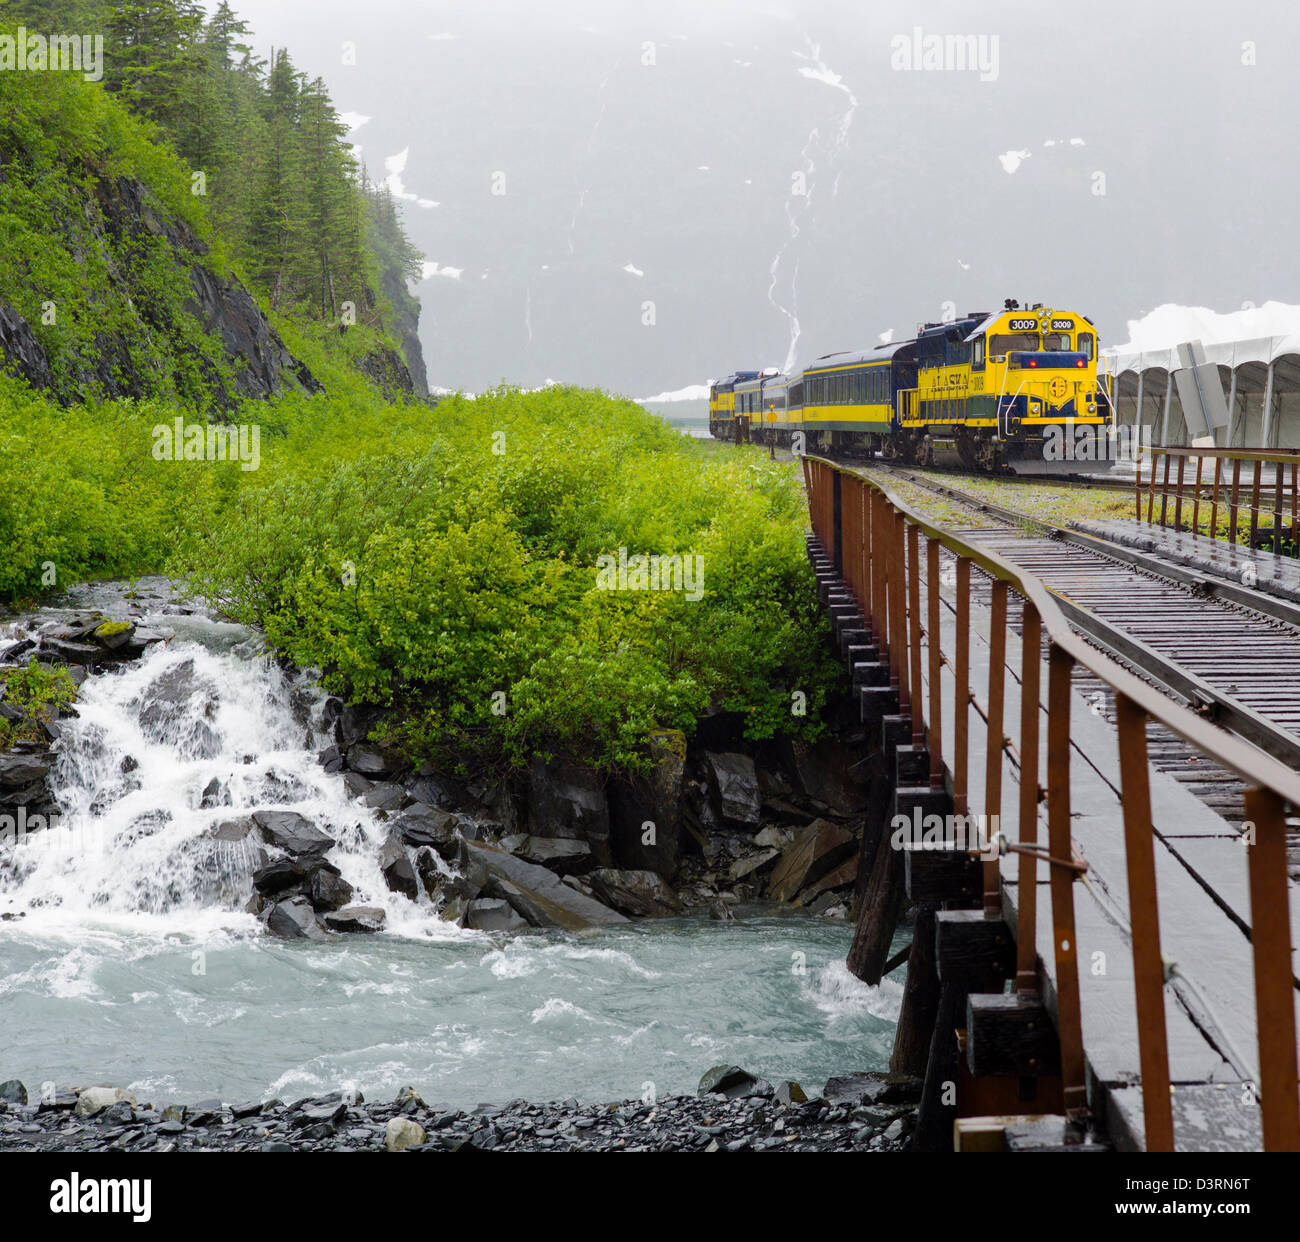 The Alaska Railroad depot and train, Whittier, Alaska, USA. A tunnel from Whittier to Portage is shared by autos - Stock Image